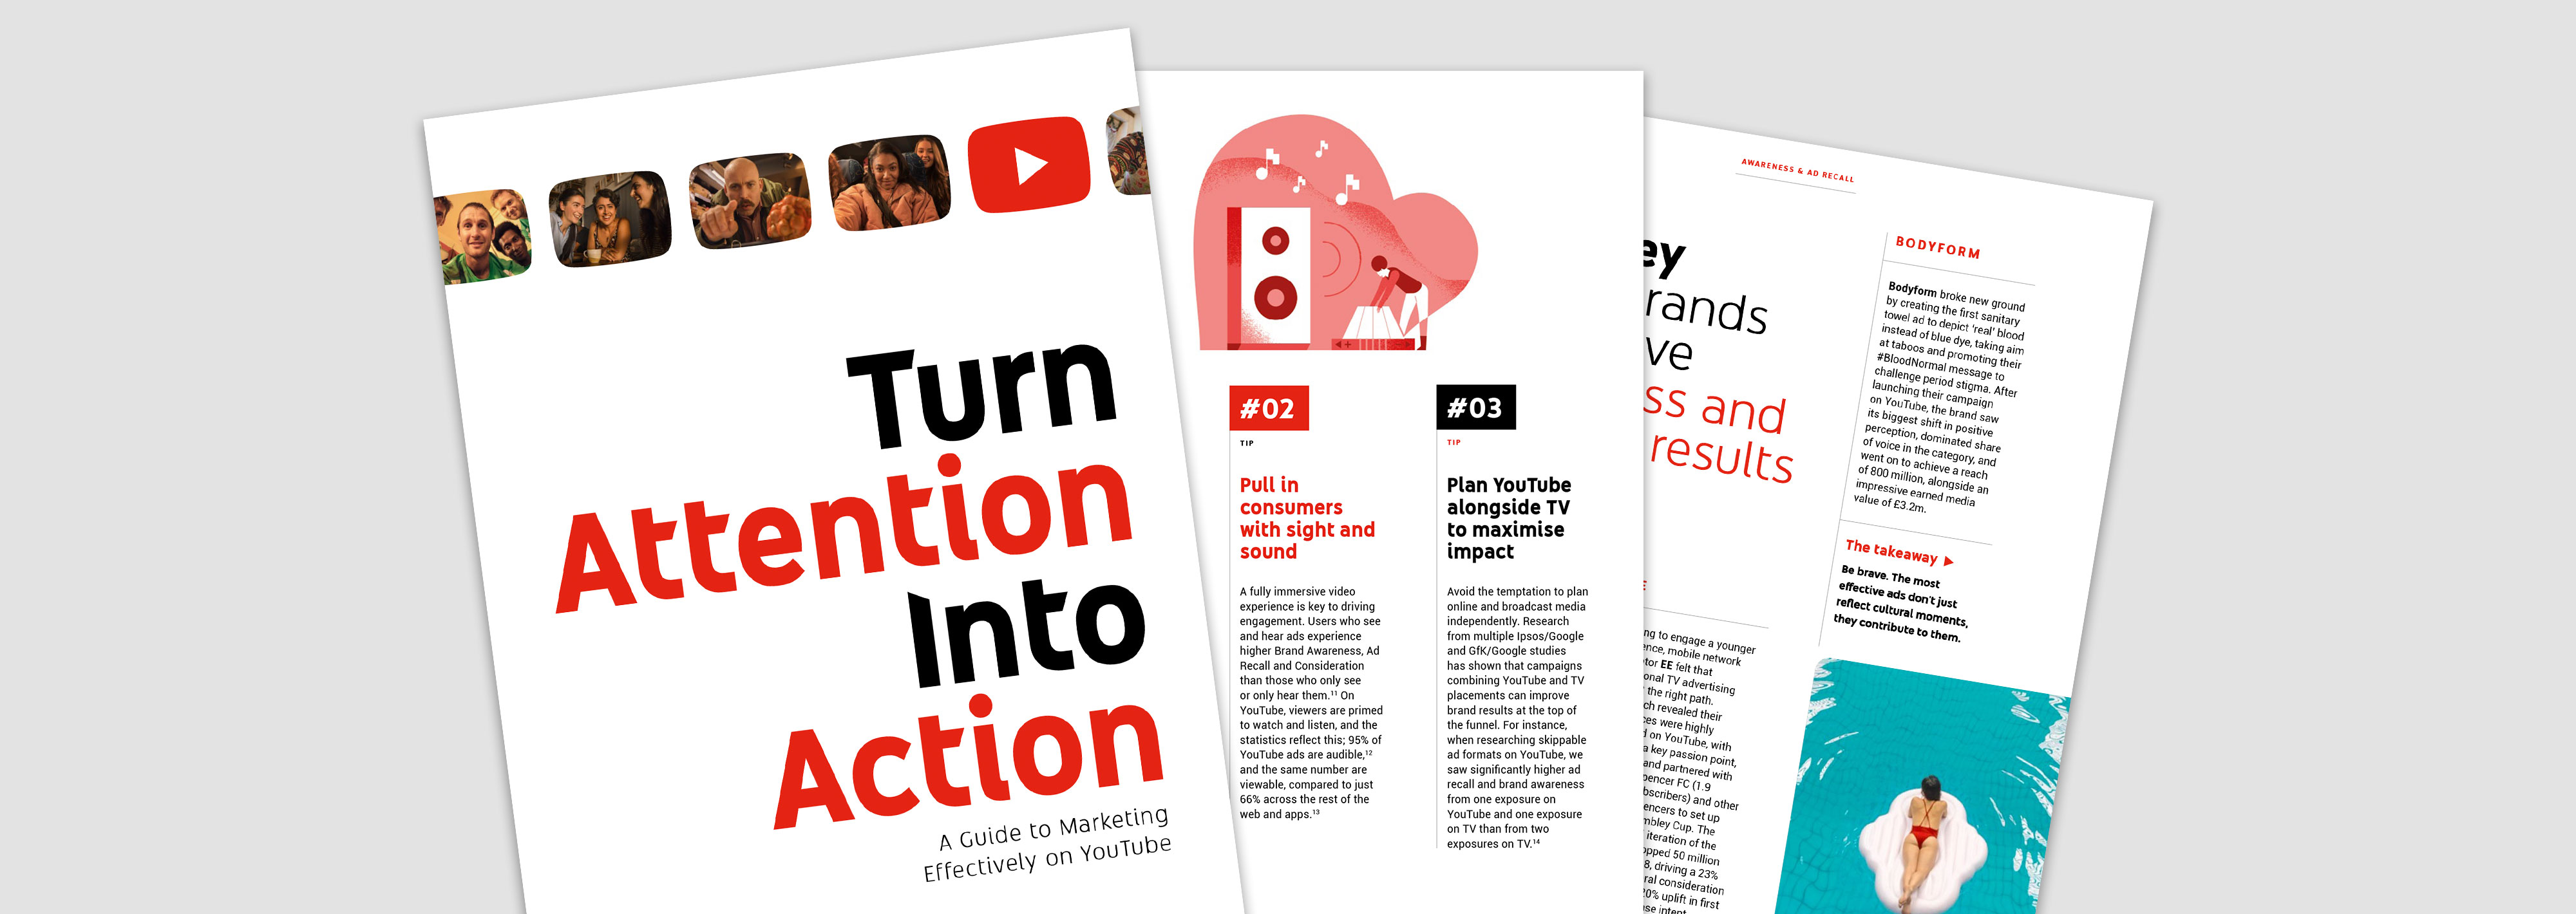 Turning Attention into Action